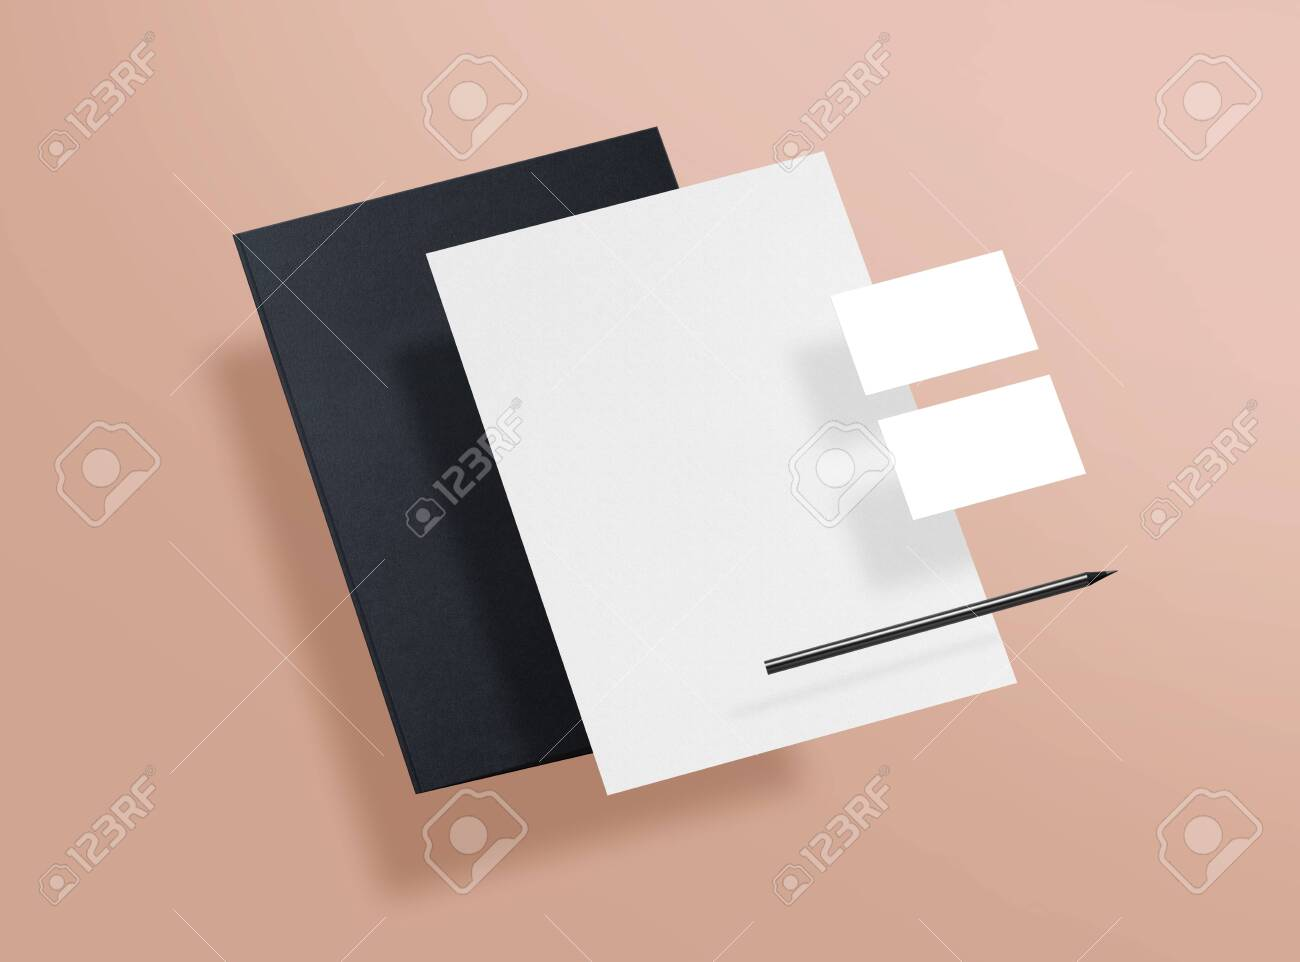 Mock up. Template for branding identity. Blank objects for placing your design. Sheet of paper, business cards and folder. 3d illustration. - 150177836